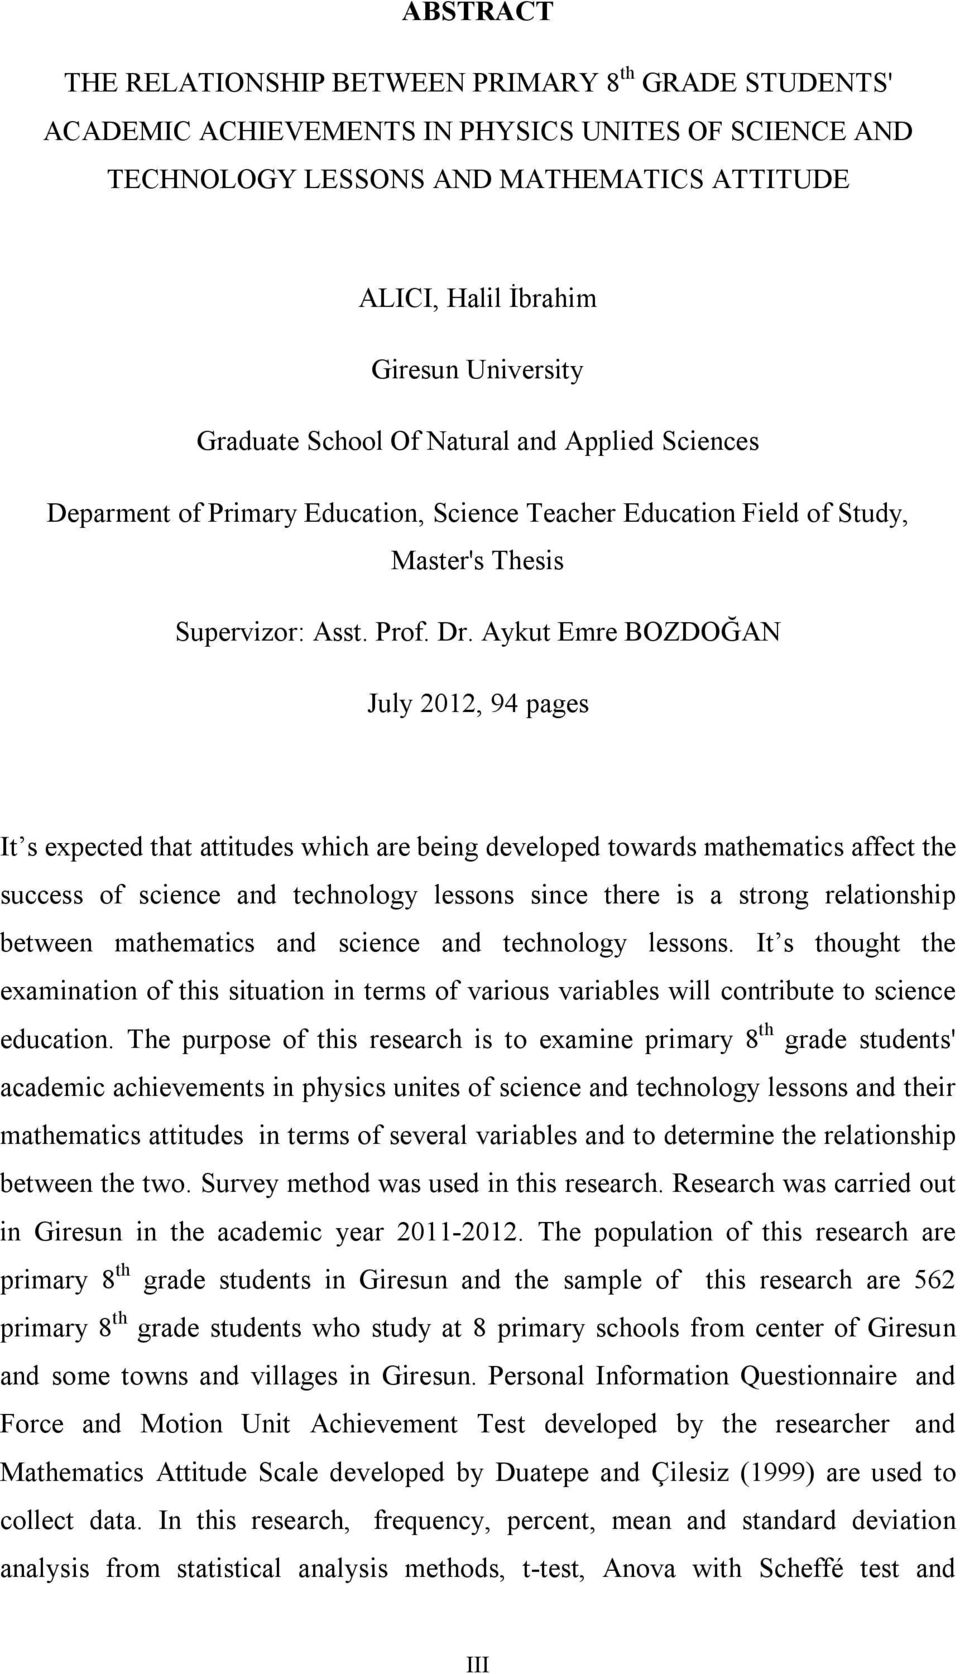 Aykut Emre BOZDOĞAN July 2012, 94 pages It s expected that attitudes which are being developed towards mathematics affect the success of science and technology lessons since there is a strong